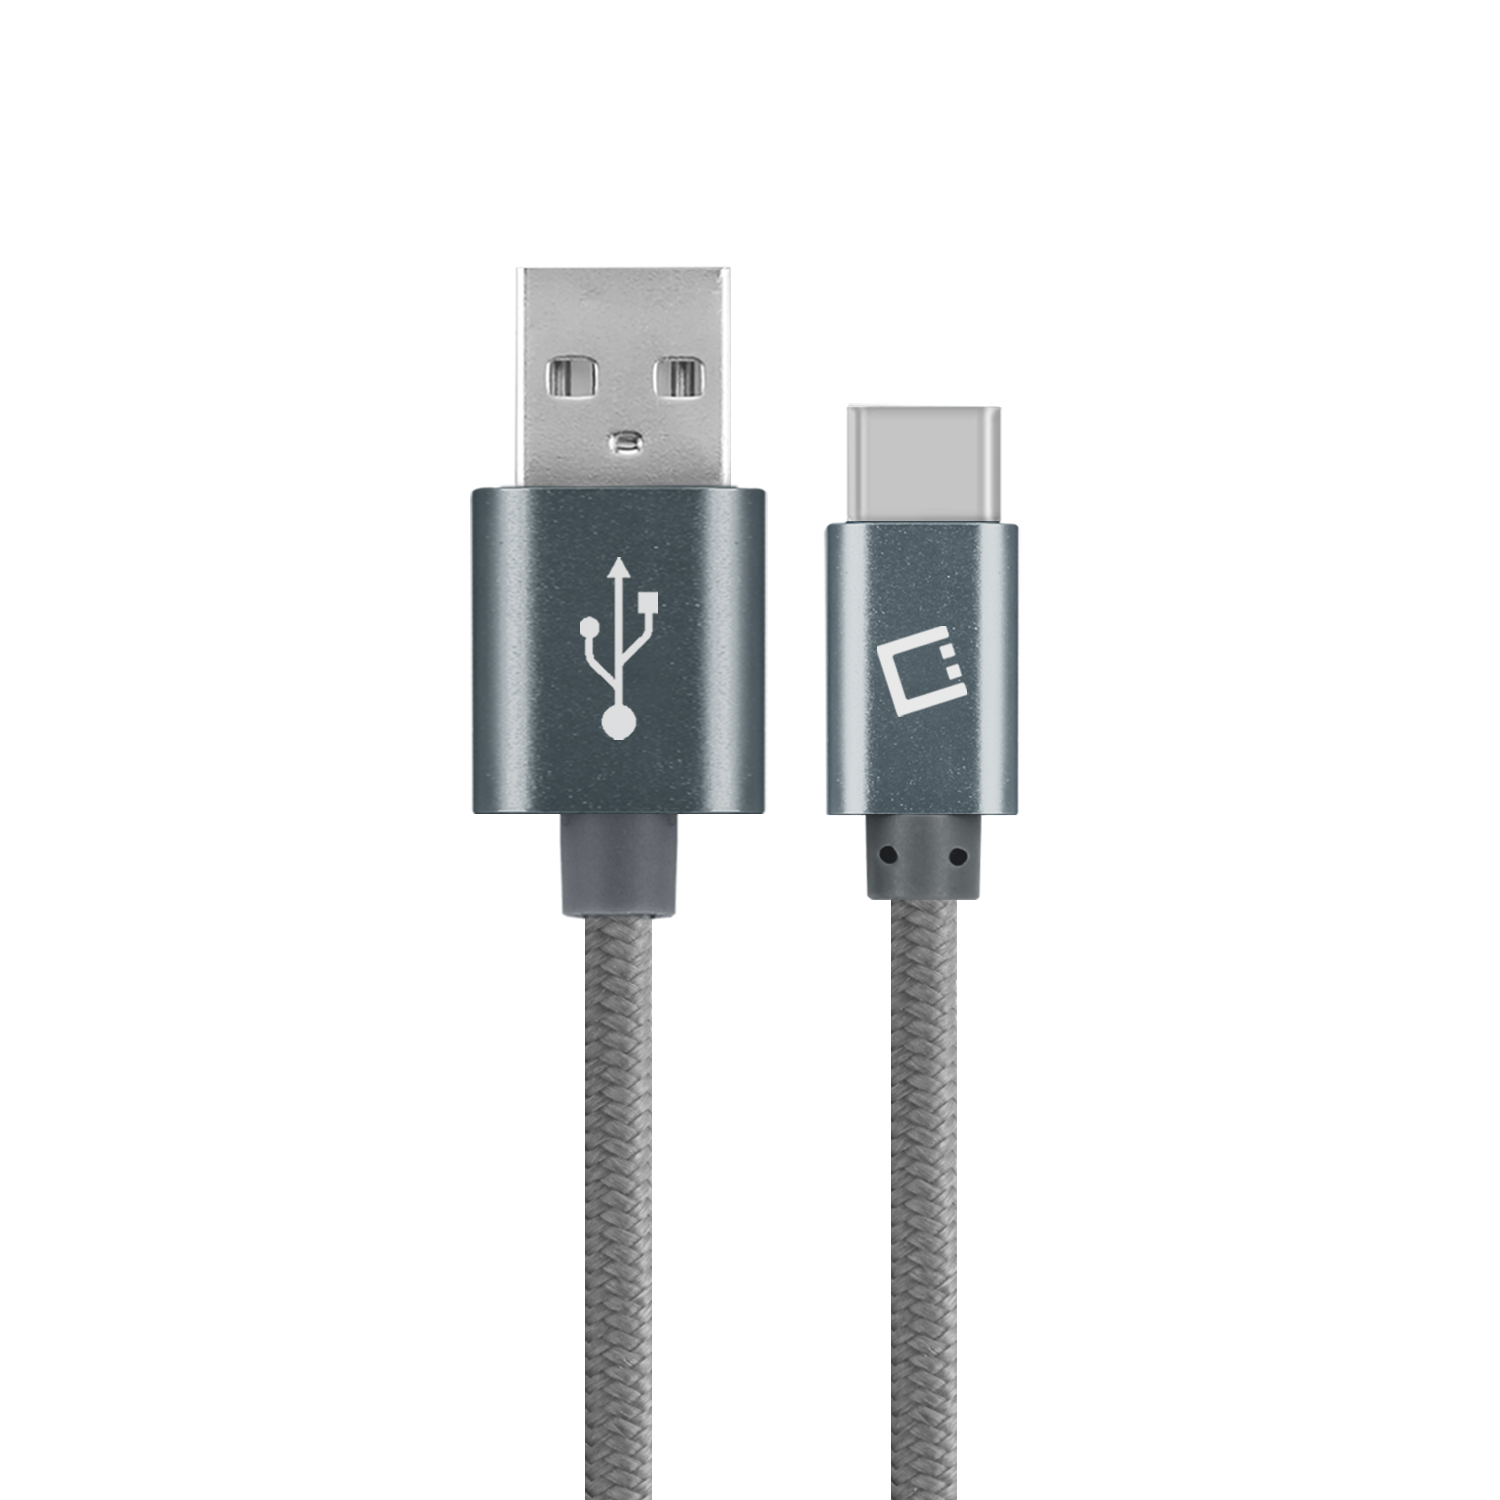 Sony Xperia XA1 USB Type-C To Type-A Braided Data Power Cable Grey 10ft Braided